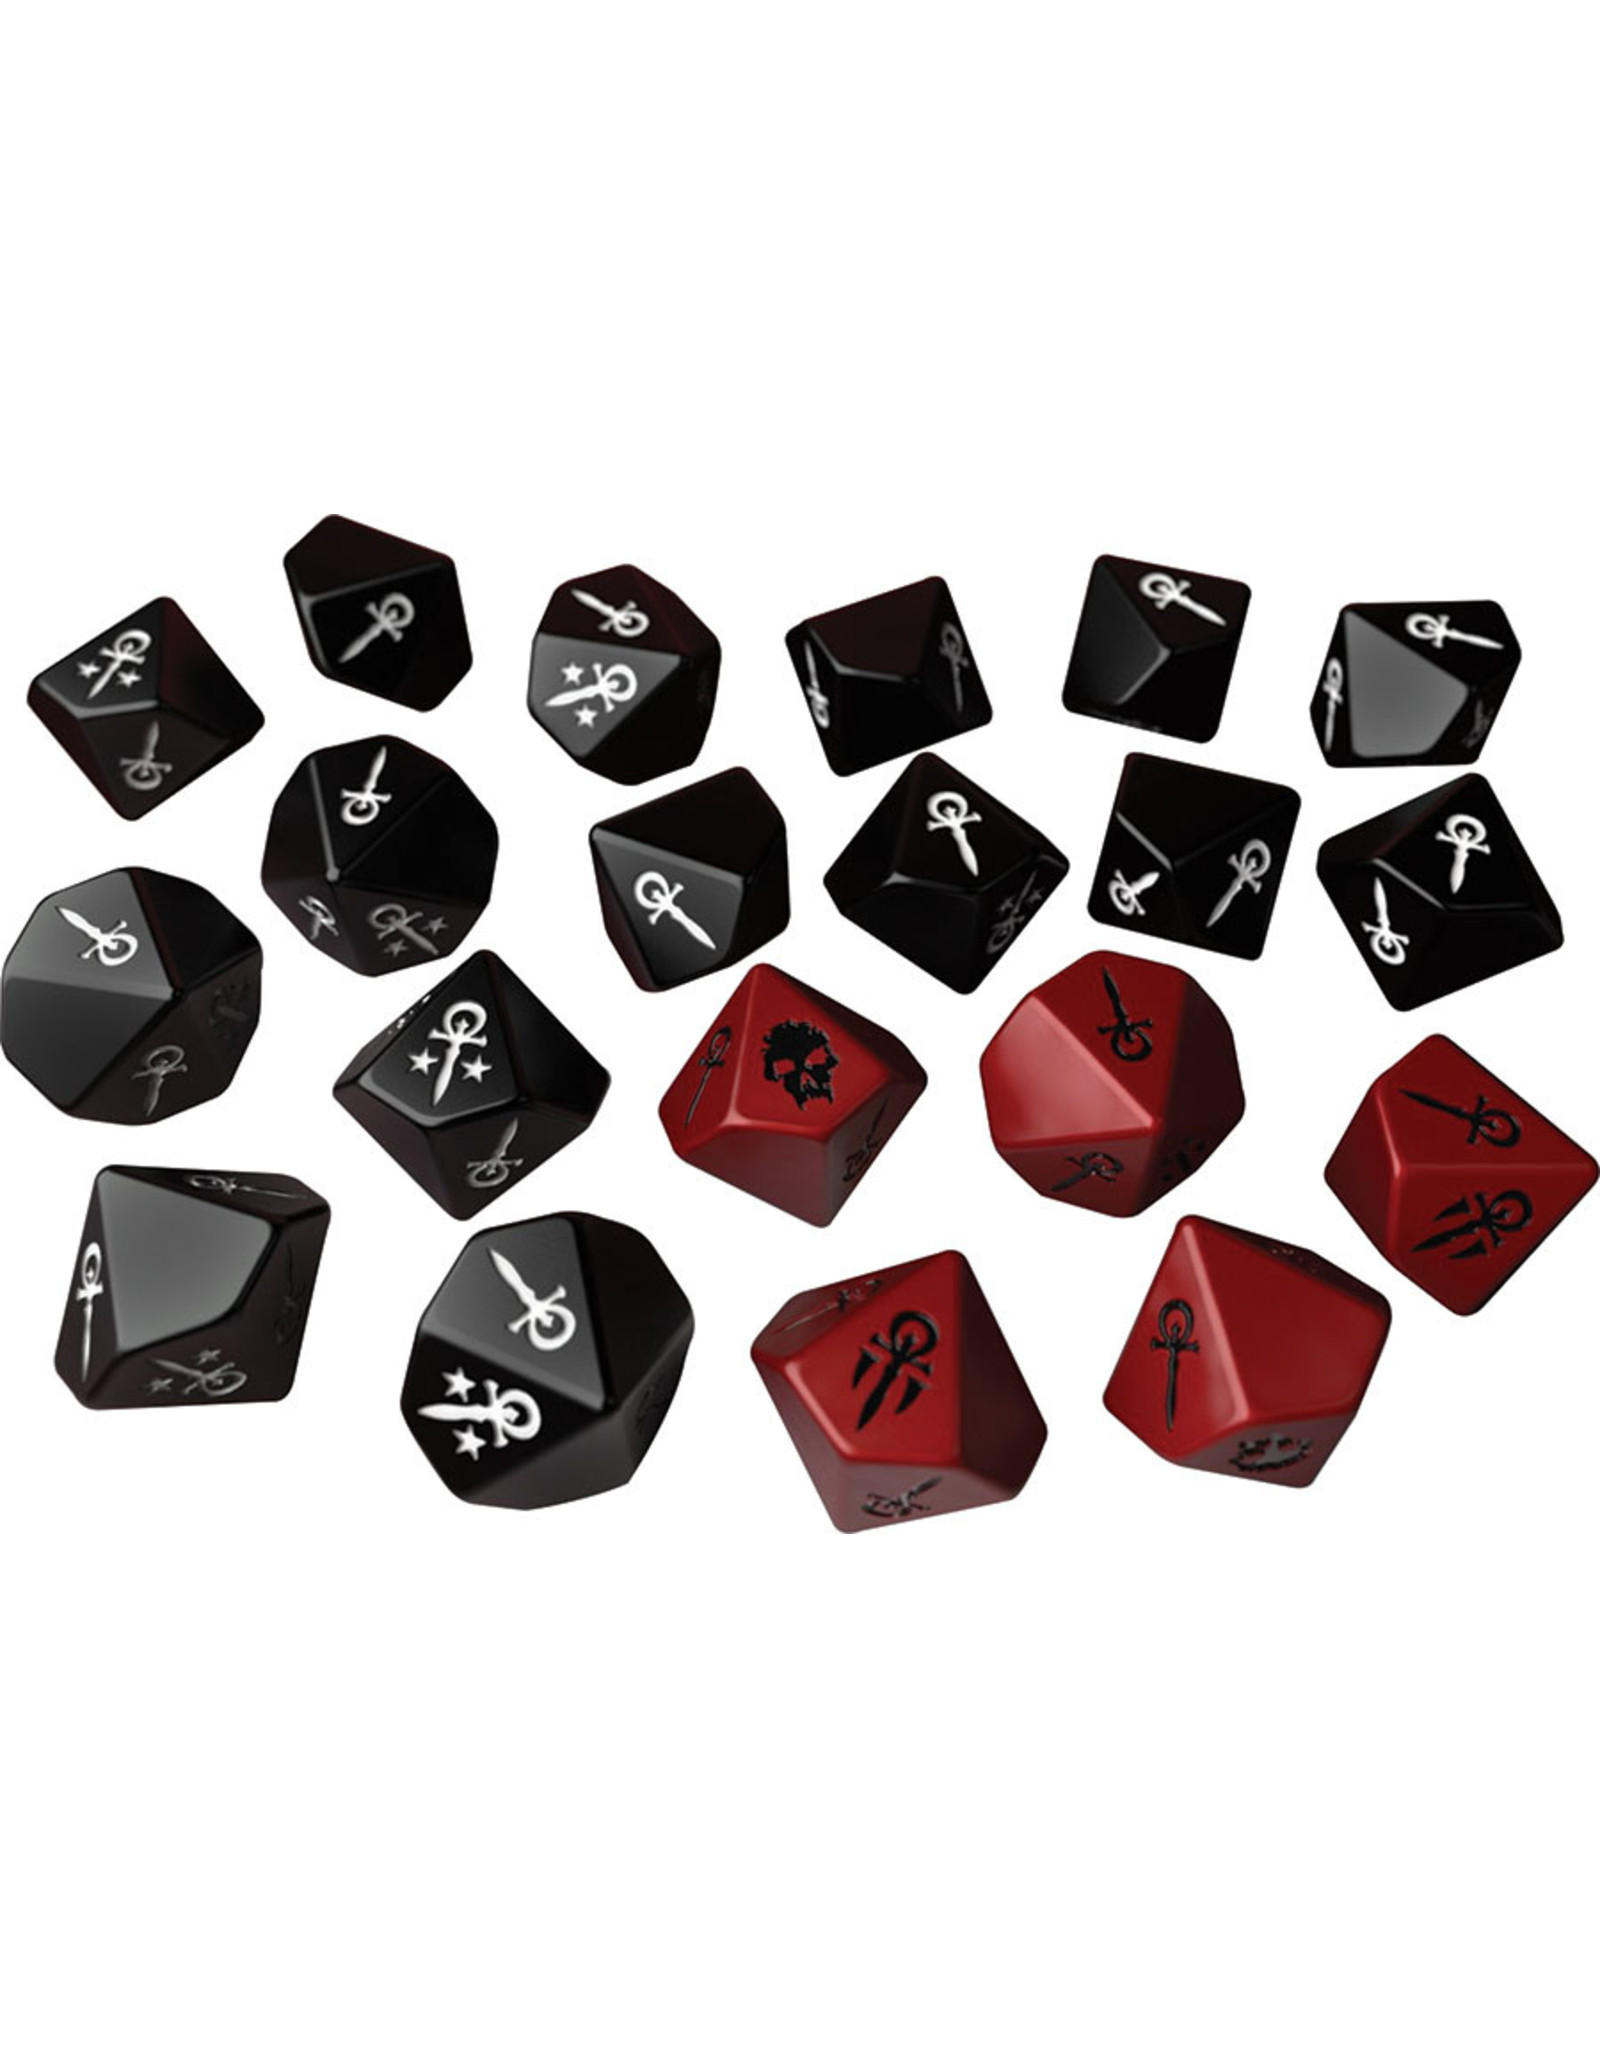 Modiphius Vampire the Masquerade 5E: Dice Set